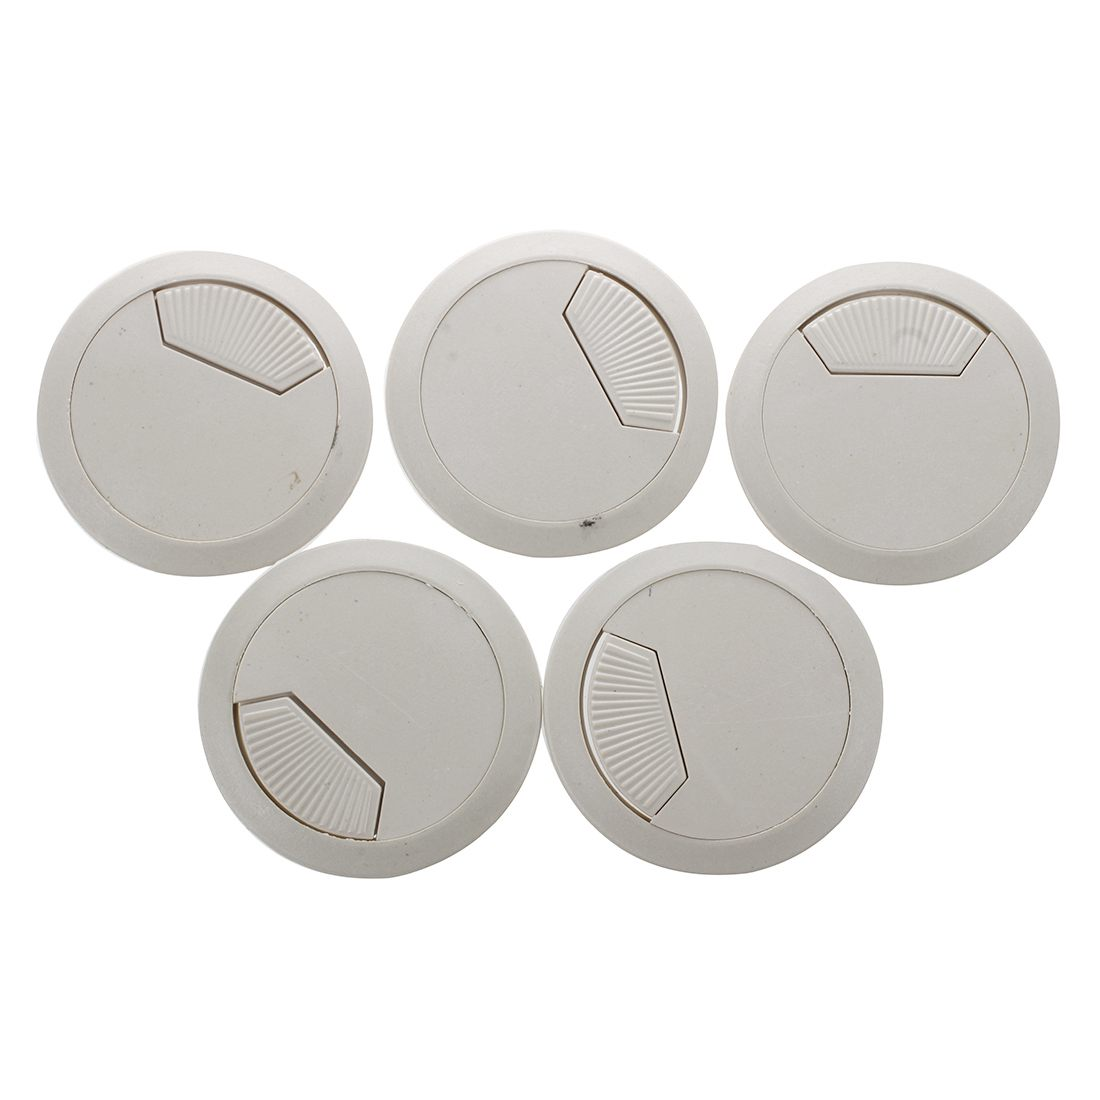 5 piece office desk table computer 60 mm cable pin hole cover- gray5 piece office desk table computer 60 mm cable pin hole cover- gray